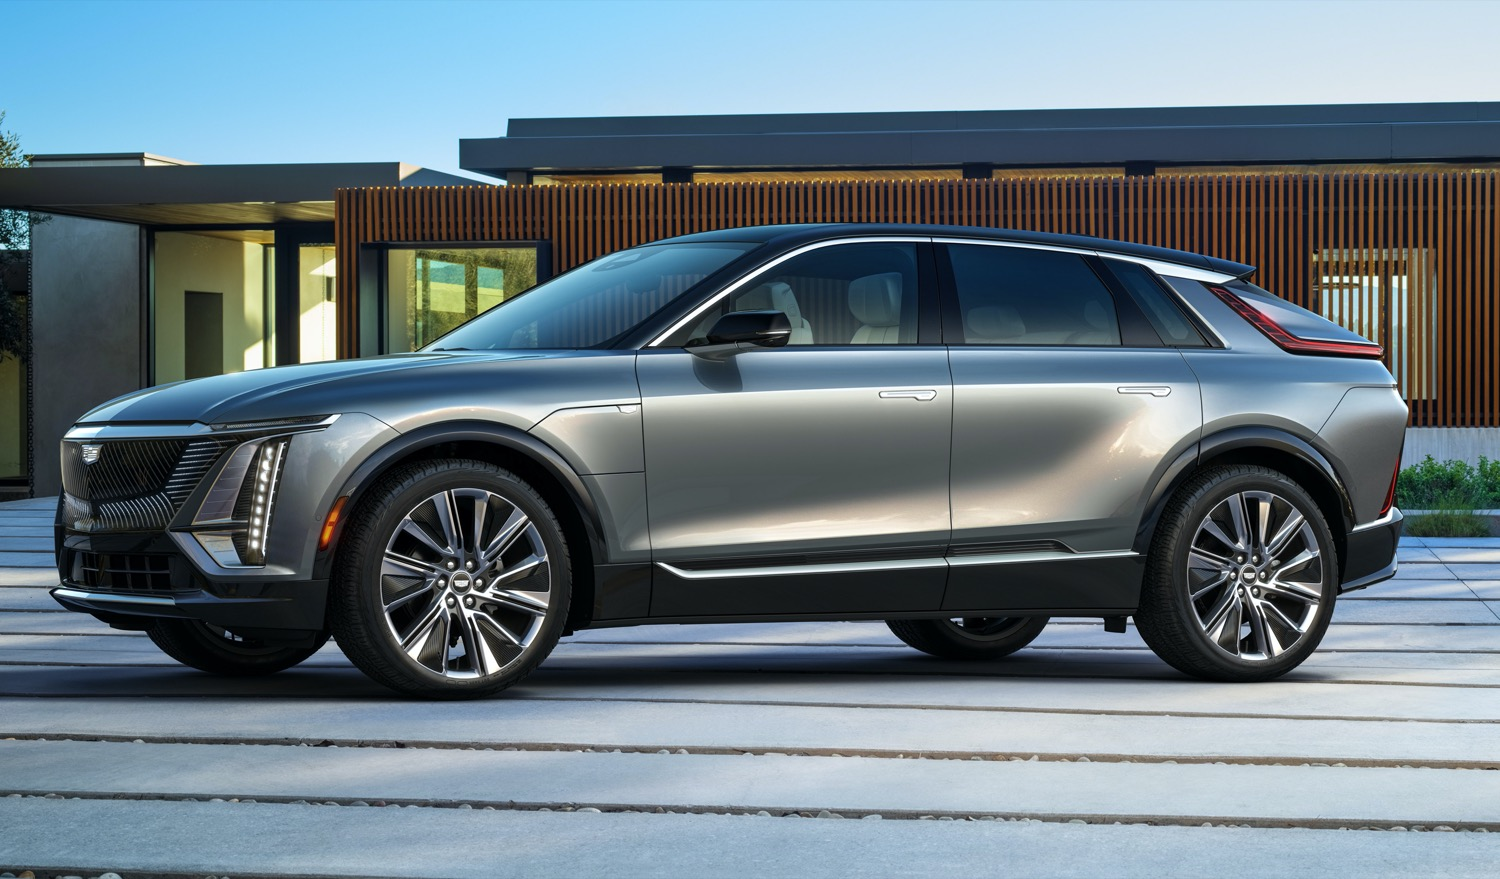 Cadillac: Our Future is Electric